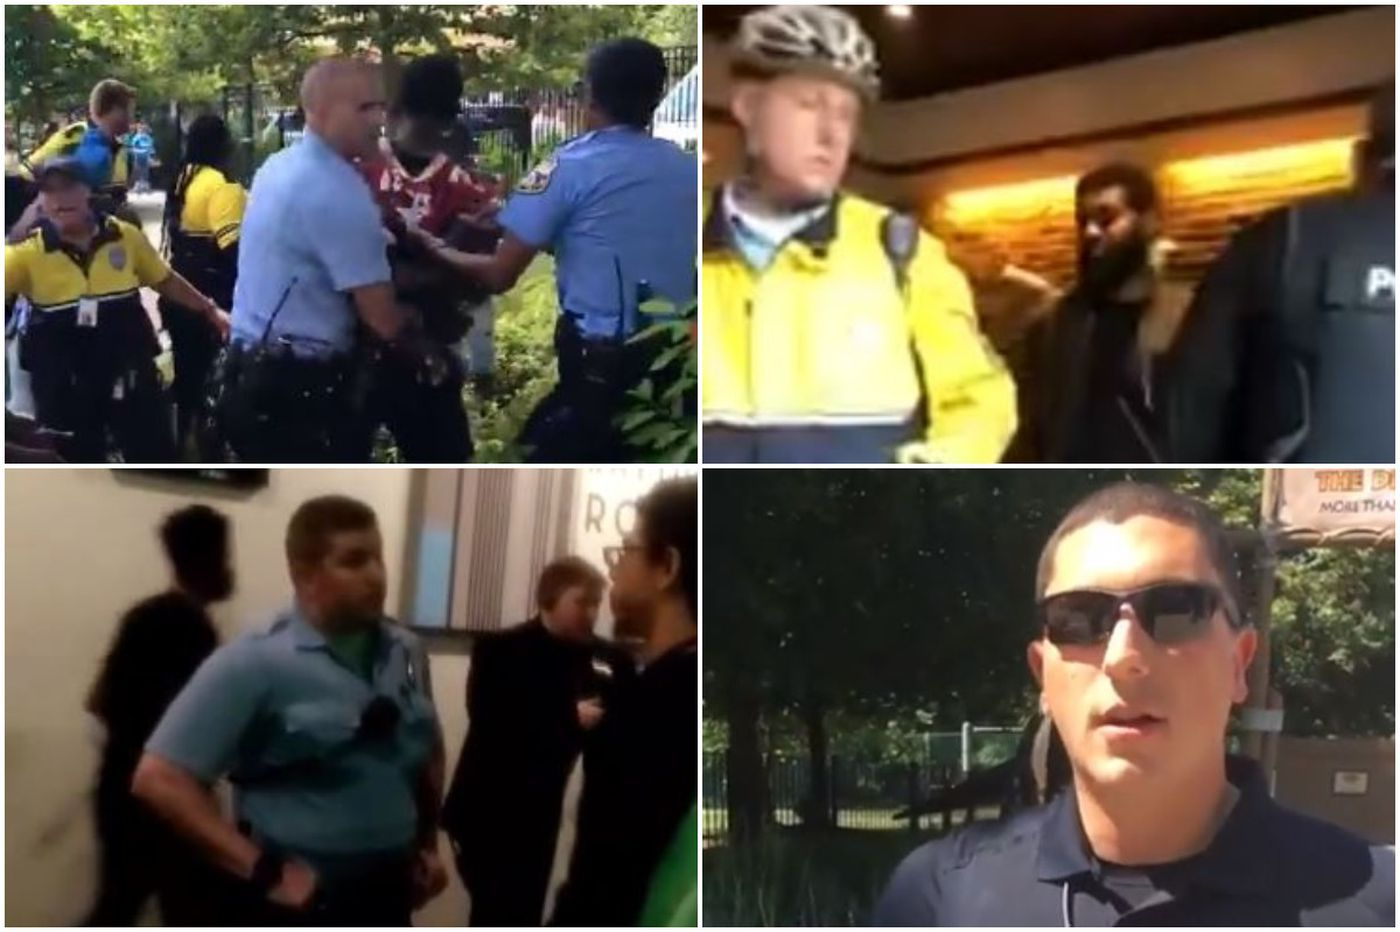 Viral videos alleging racial profiling show what people of color have 'endured for generations'